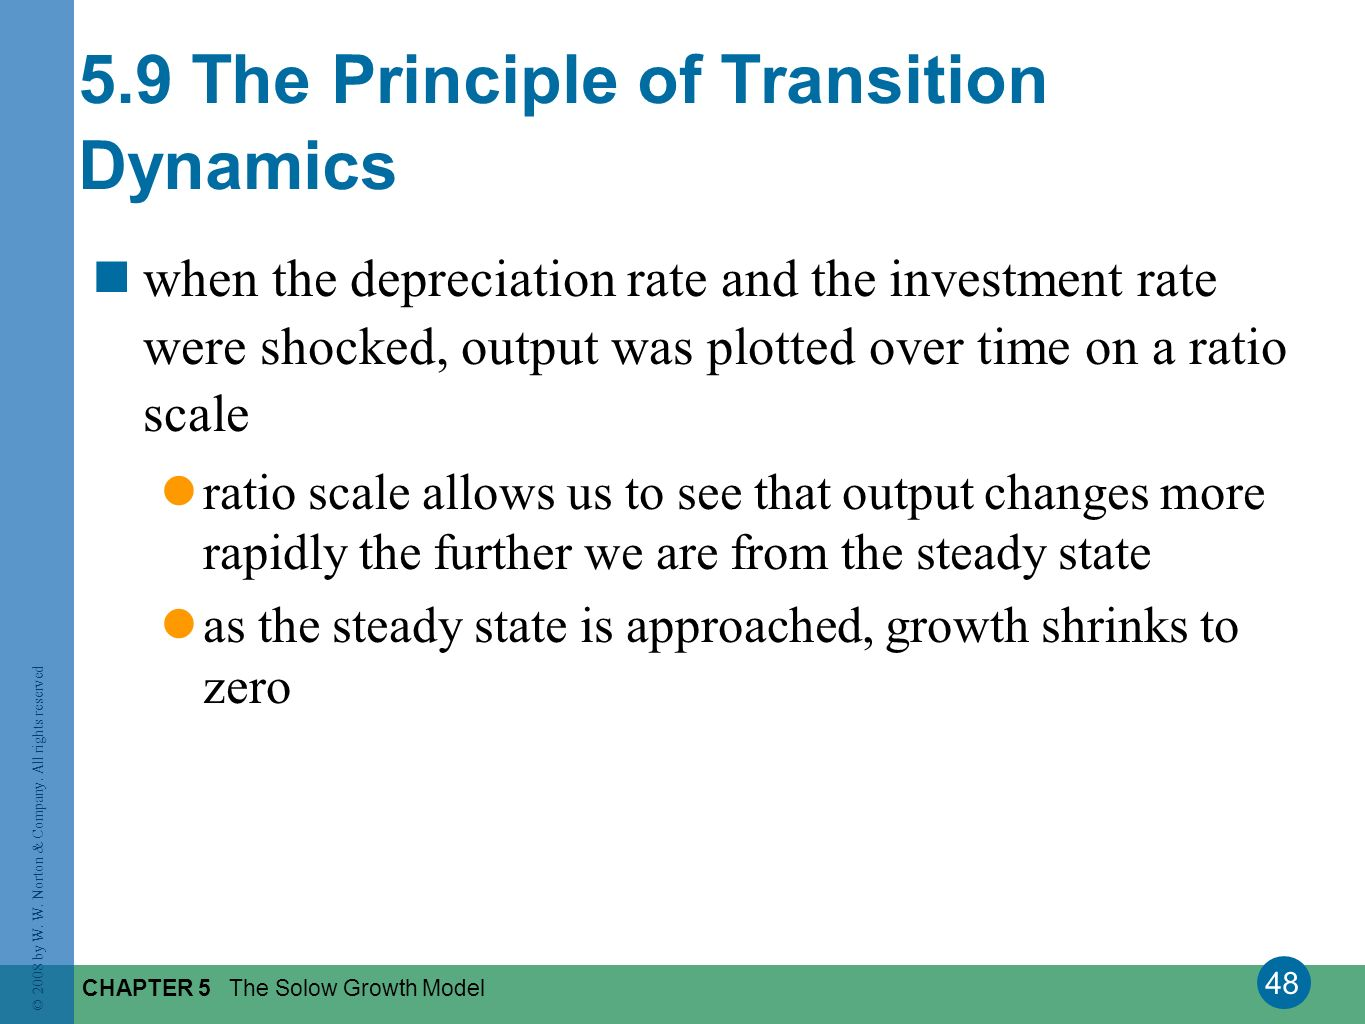 5.9 The Principle of Transition Dynamics